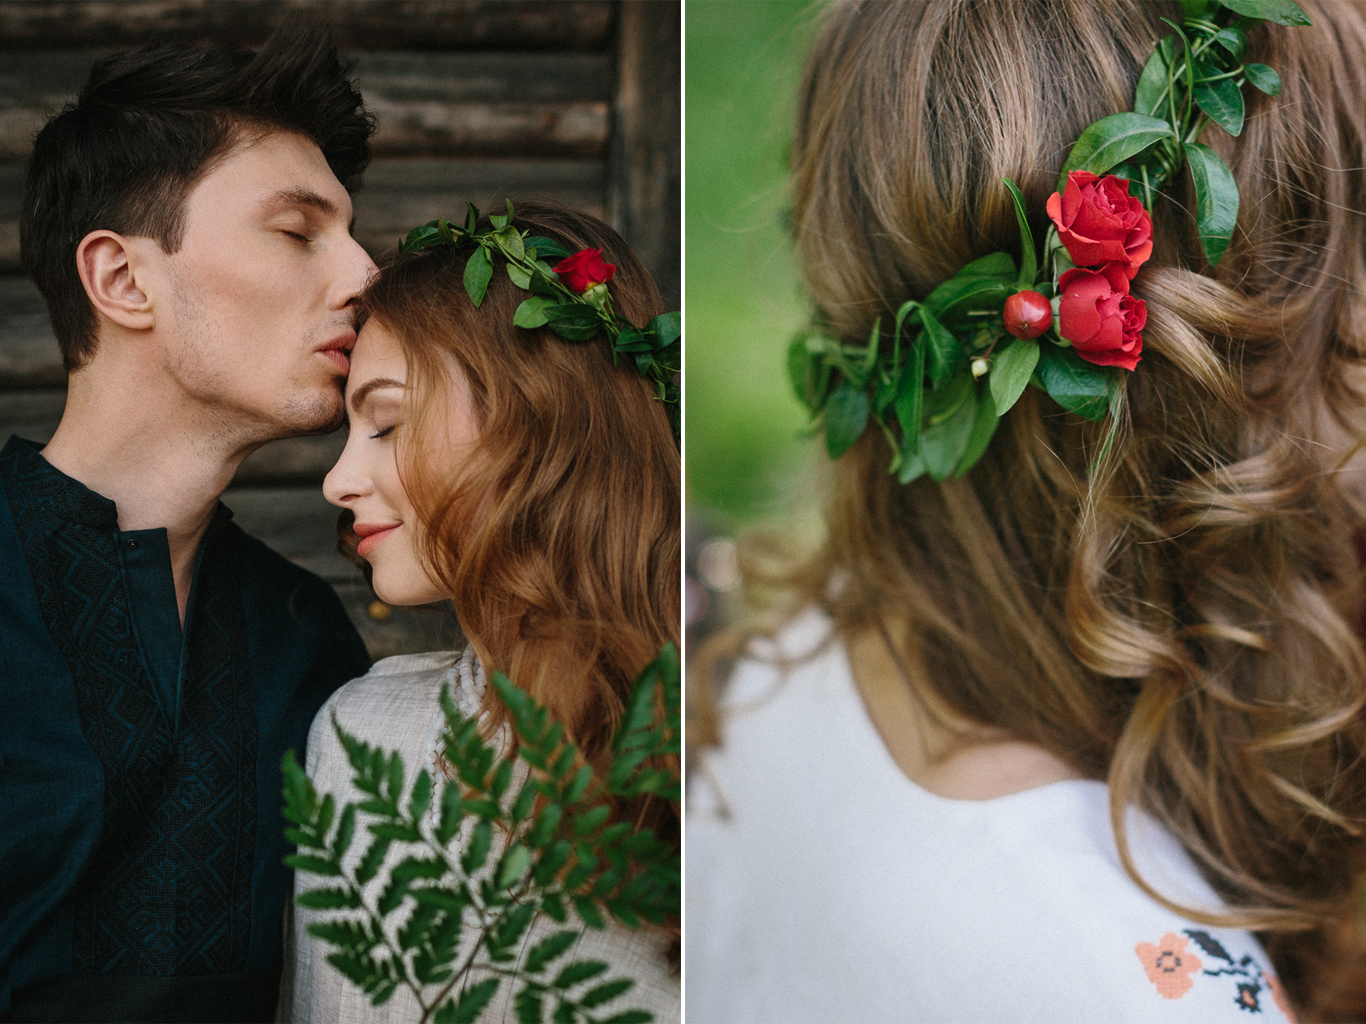 Kupava-Apple-Pie-Weddings-Polina-Illchenko-7